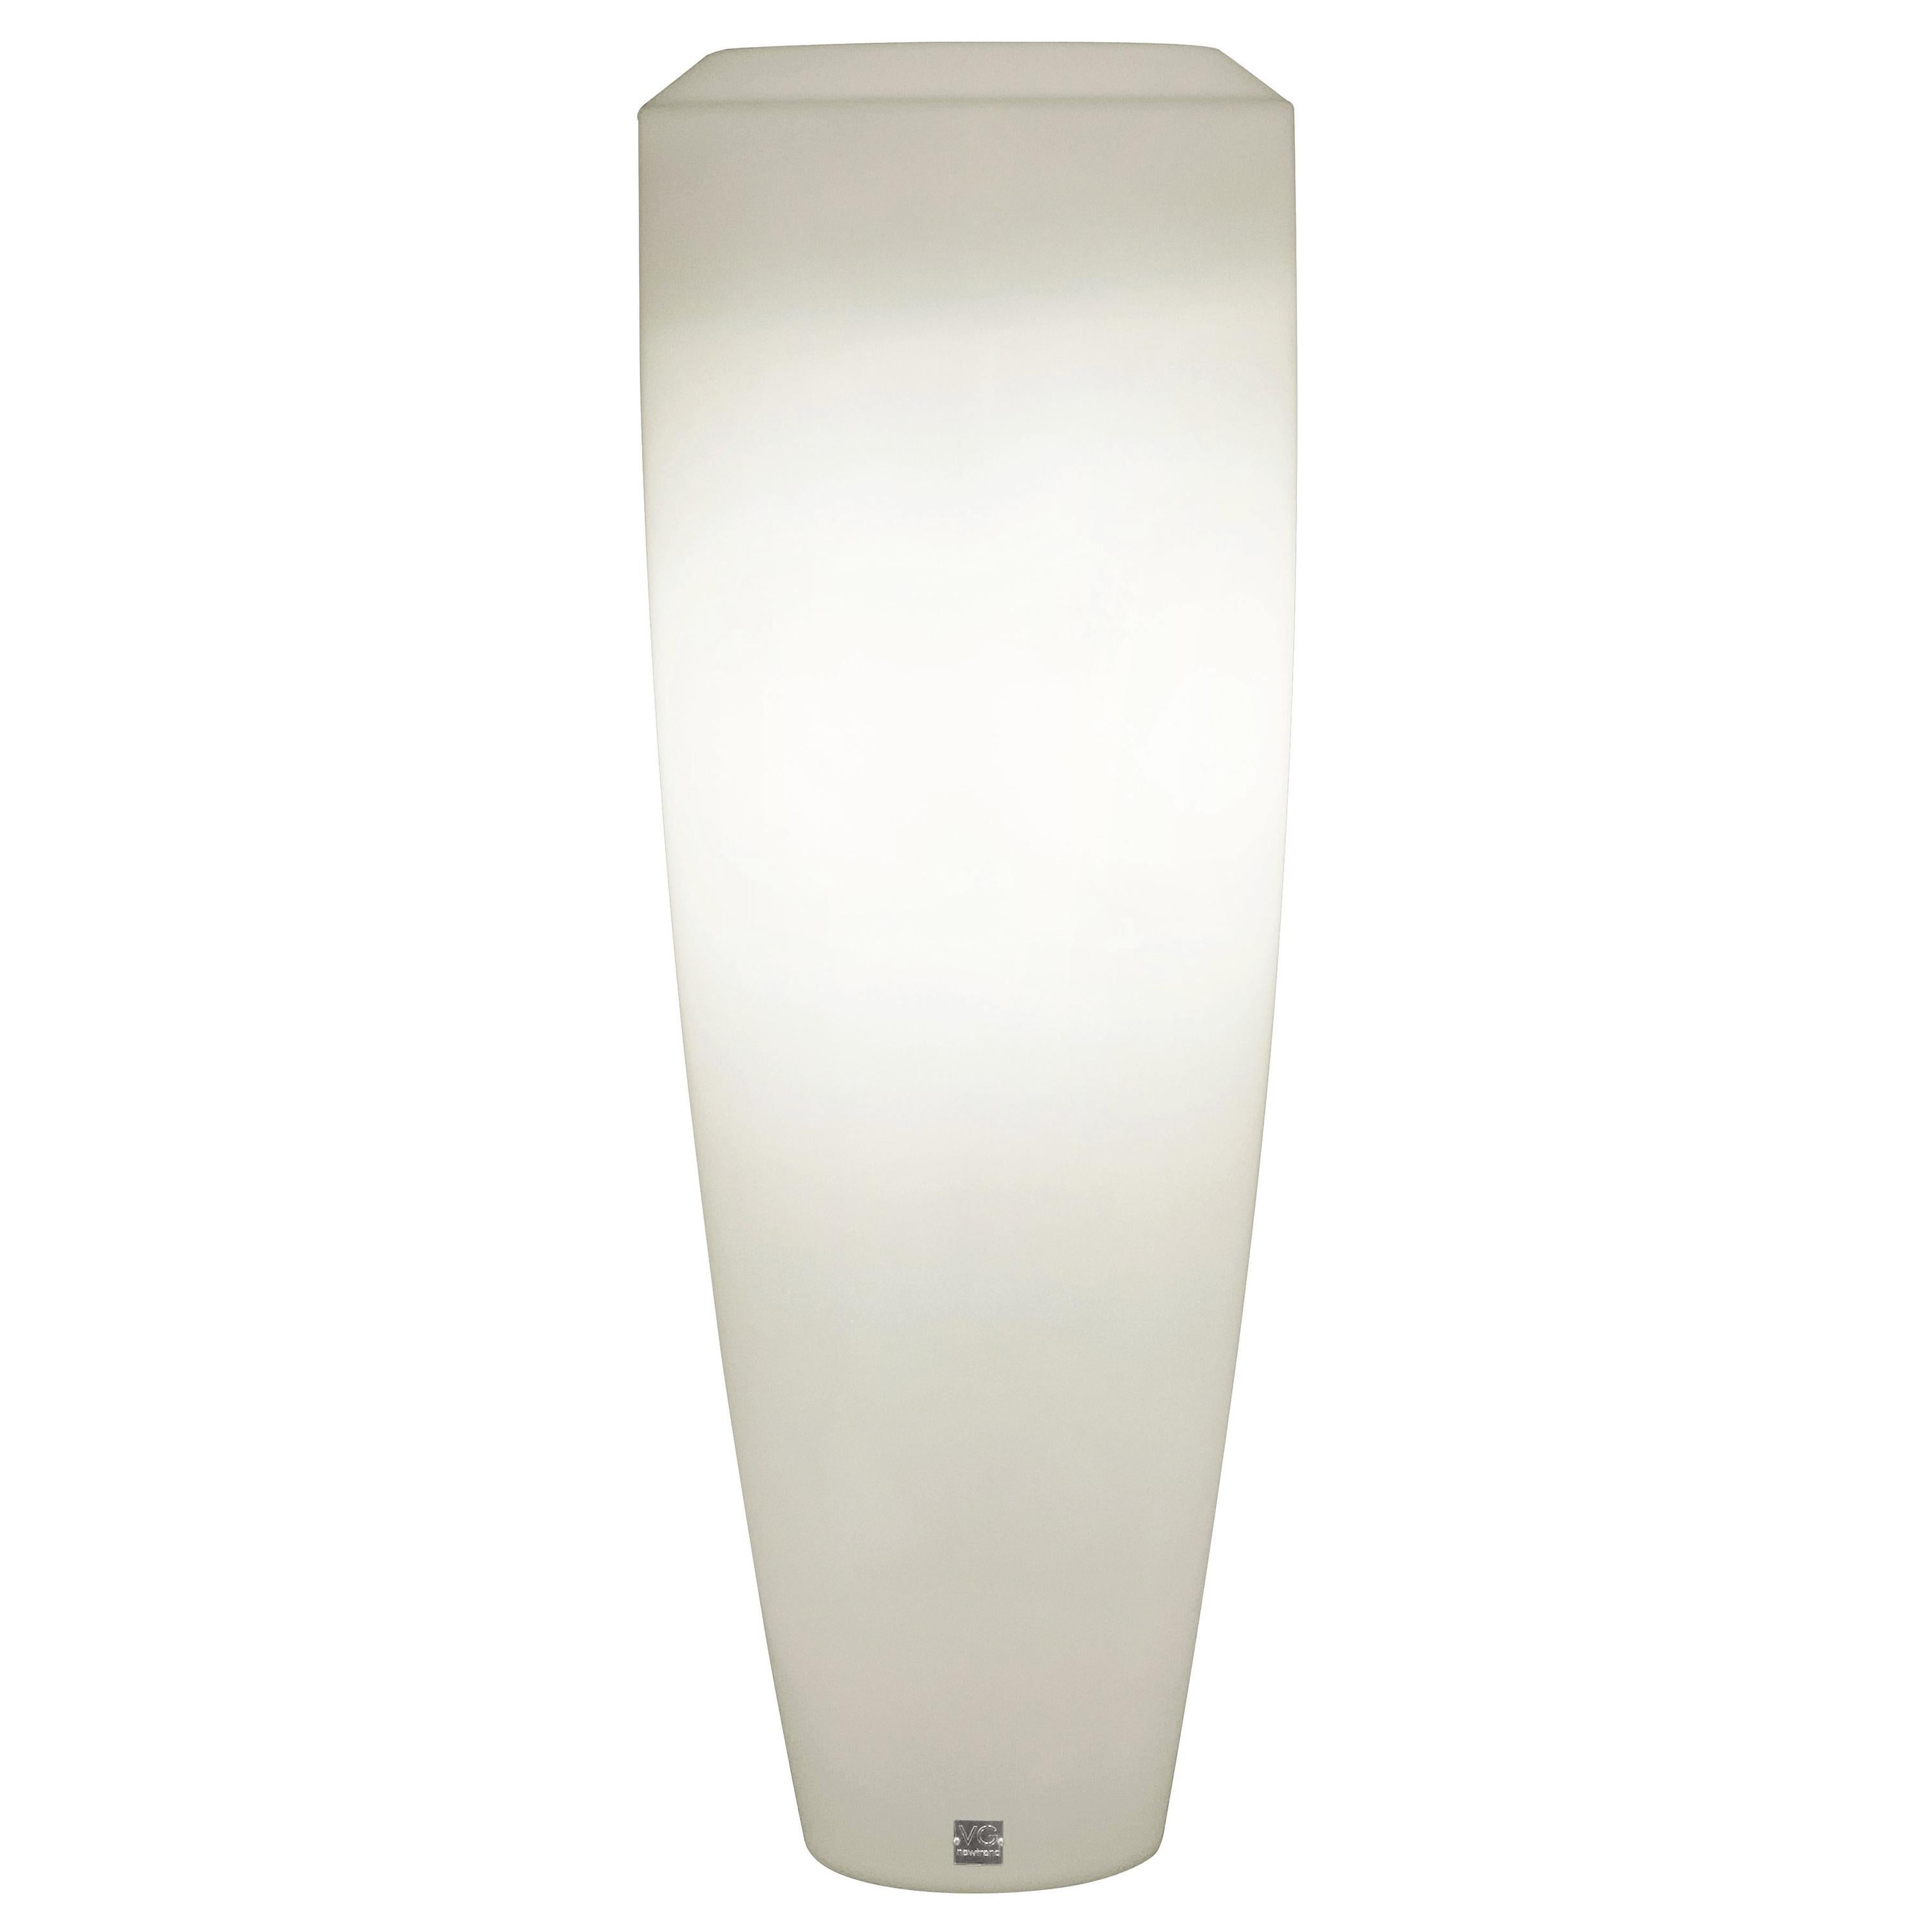 Obice Small Lamp, Ldpe, Fluorescent Kit, Indoor or Outdoor, Italy